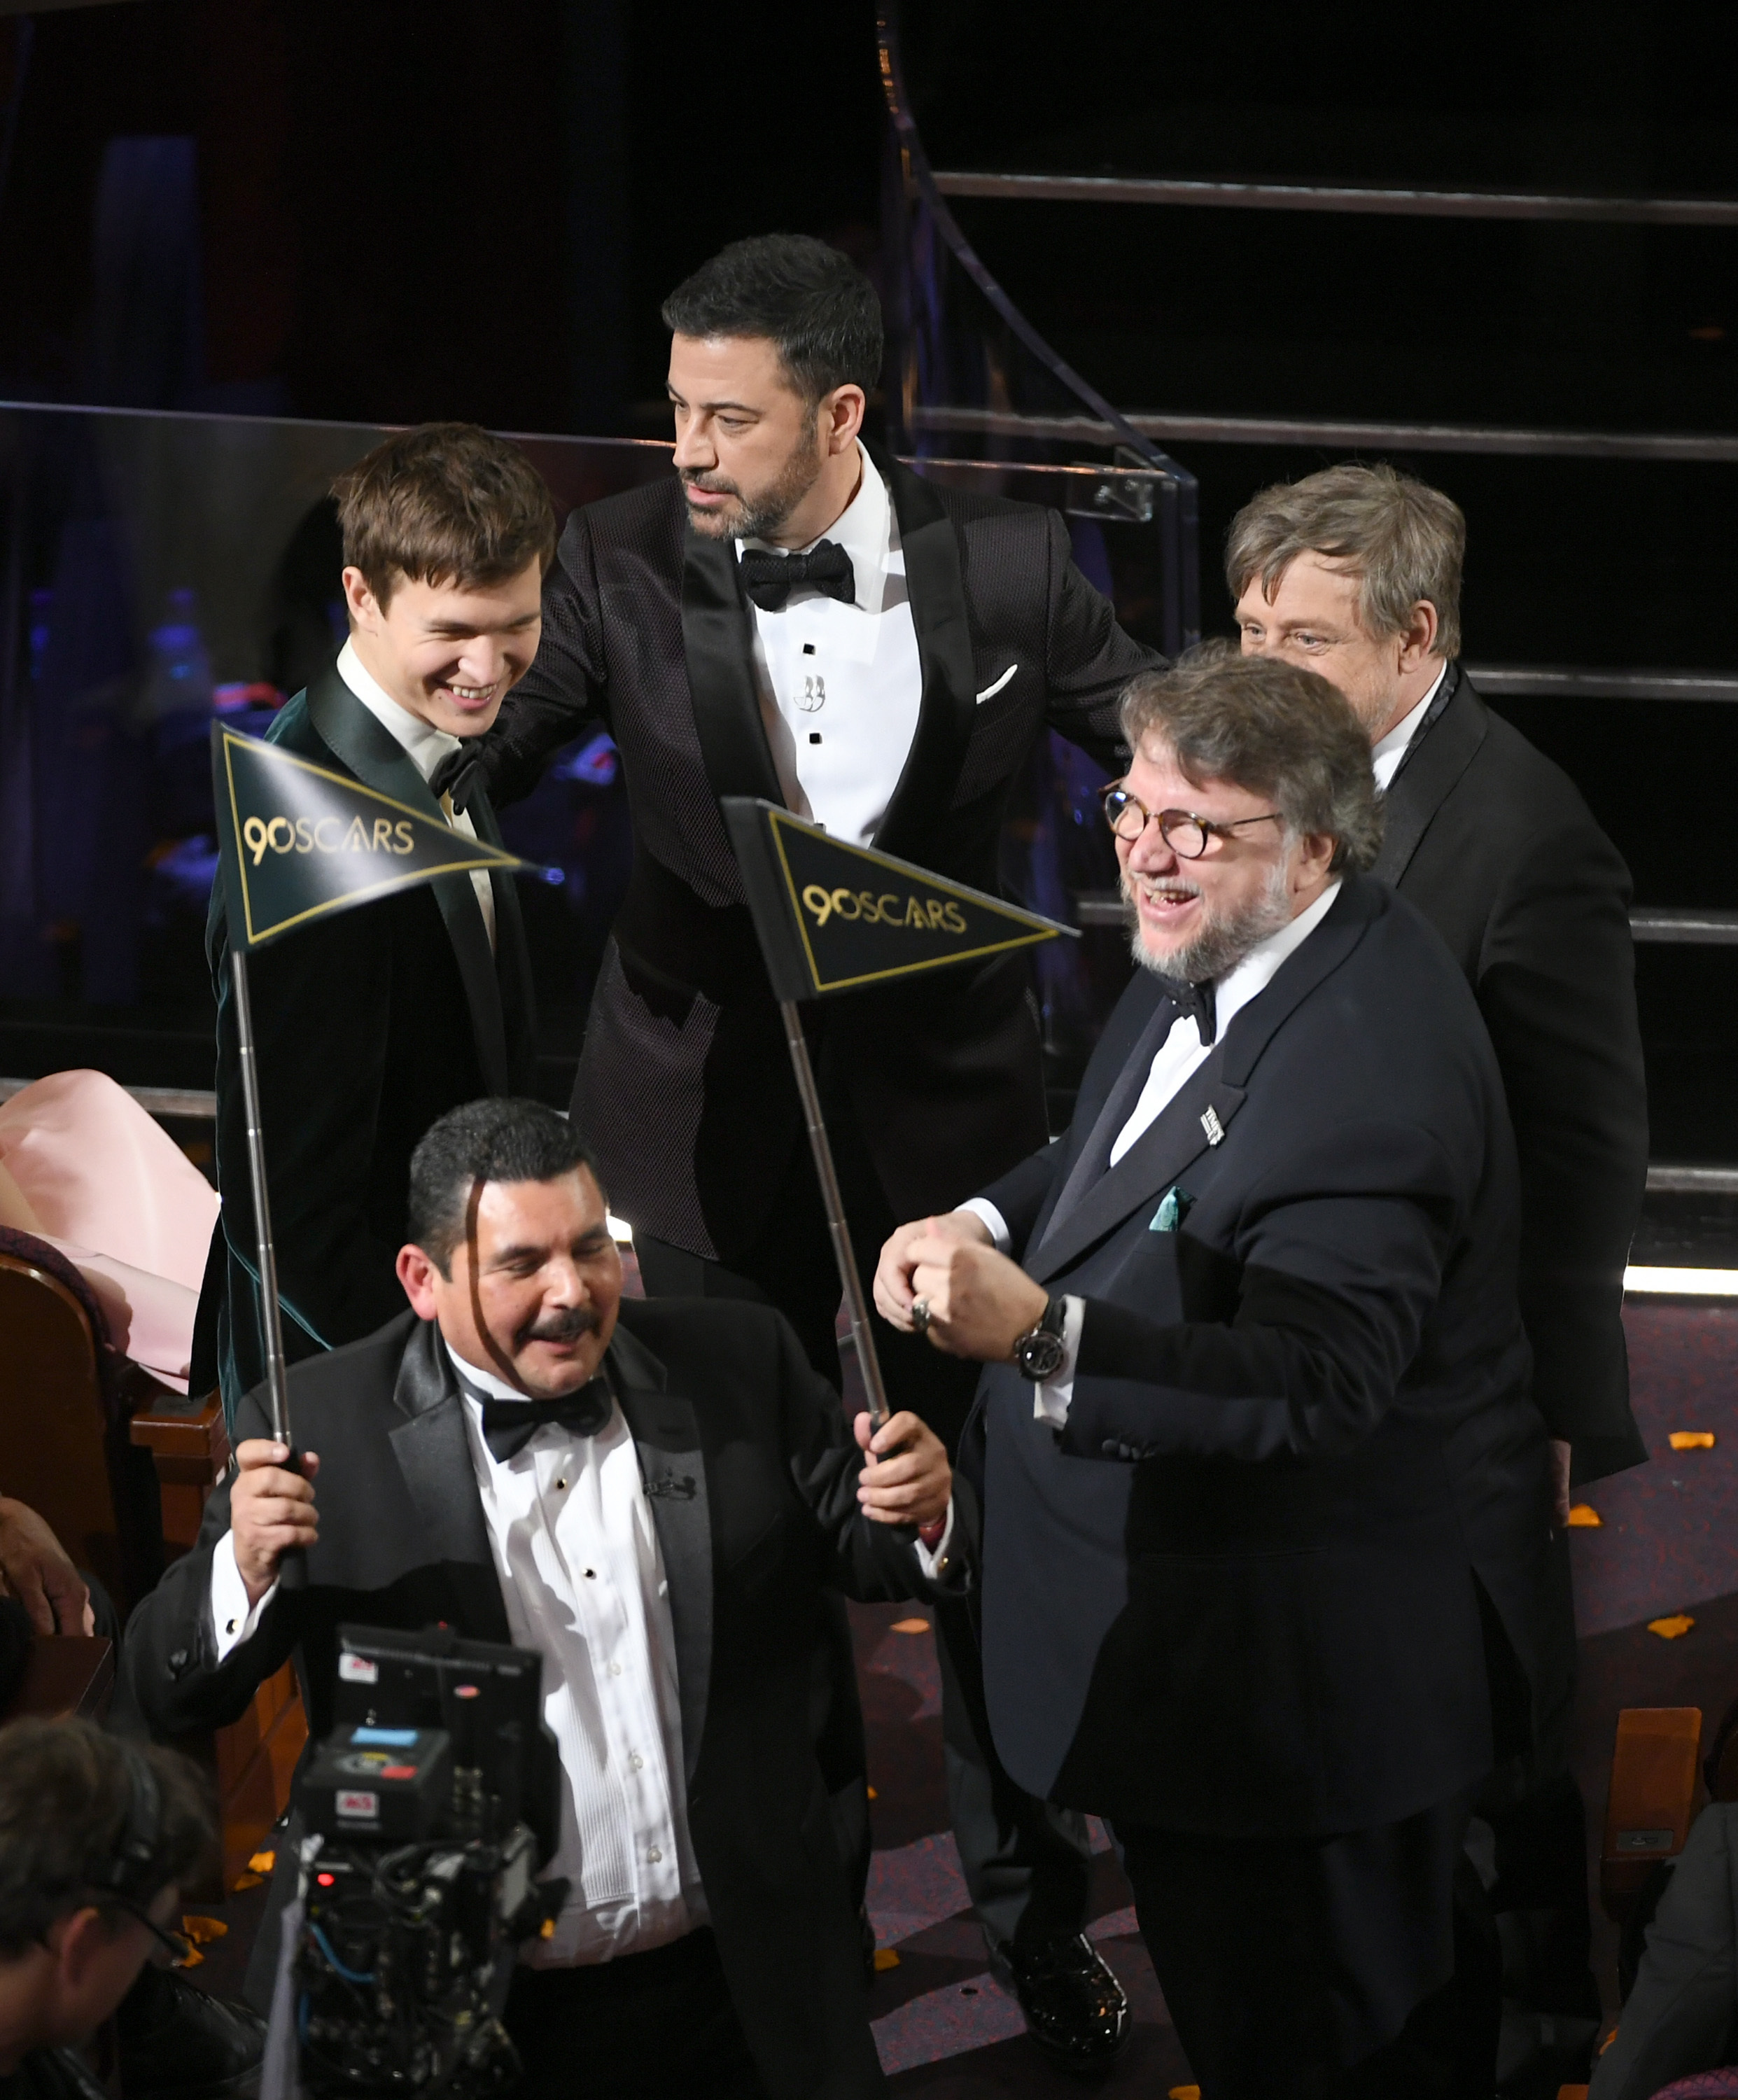 Ansel Elgort, host Jimmy Kimmel, actor Mark Hamill, director Guillermo del Toro, and TV personality Guillermo Rodriguez speak onstage during the 90th Annual Academy Awards at the Dolby Theatre at Hollywood & Highland Center in Hollywood, California on March 4, 2018.